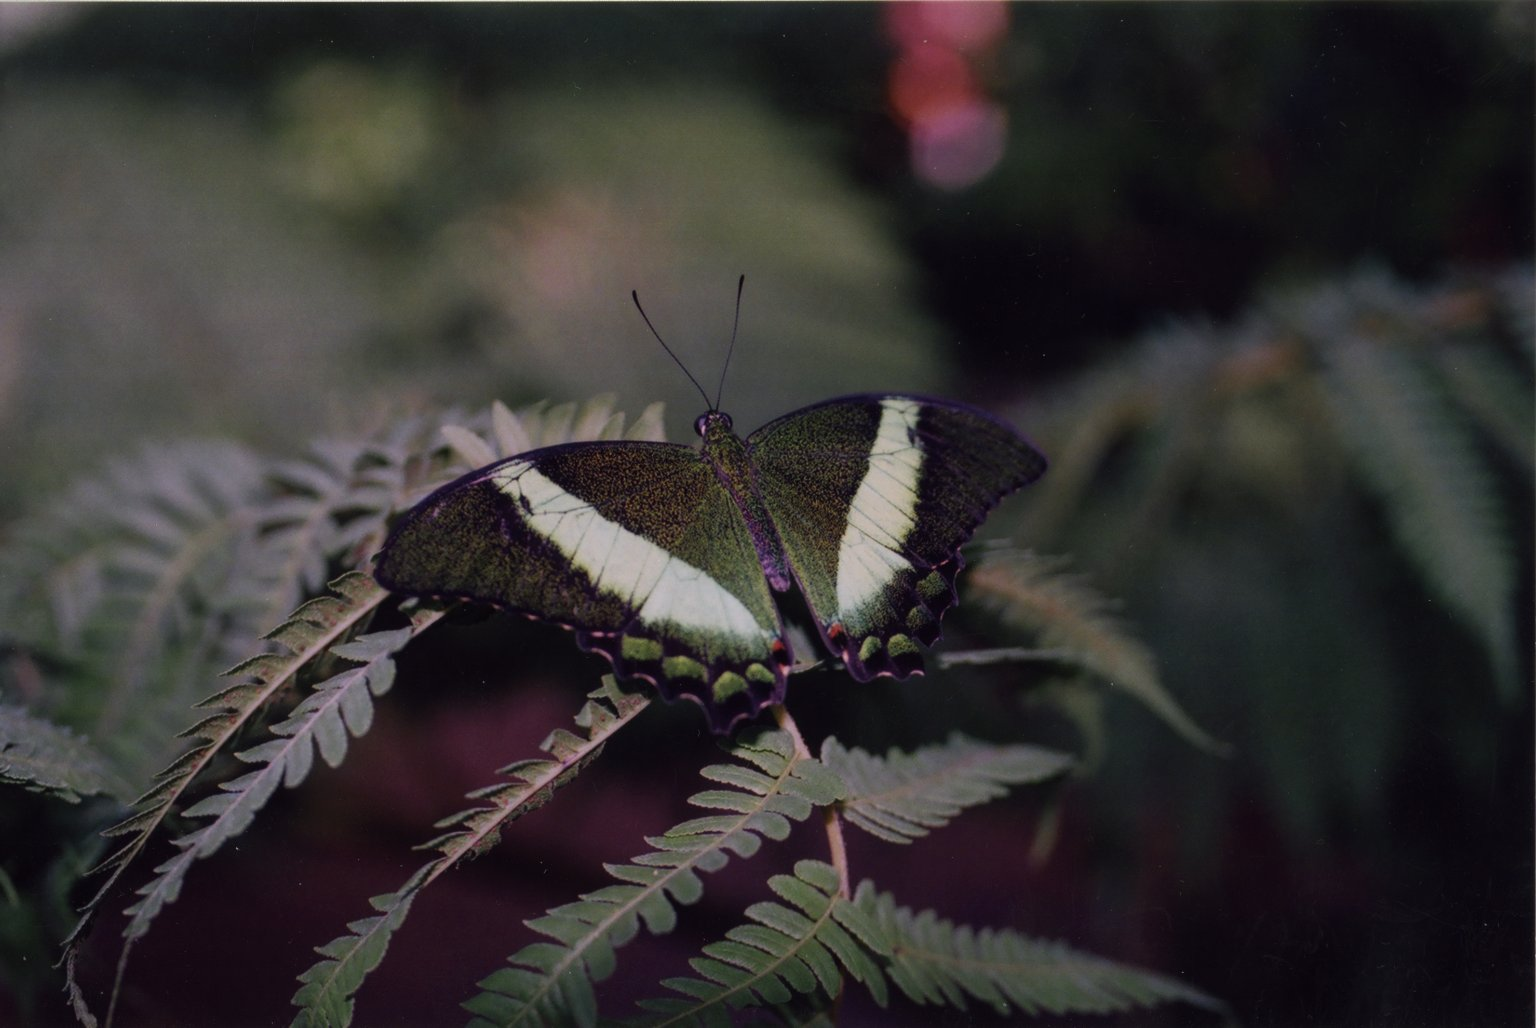 Close up of green and white butterfly on green leaves